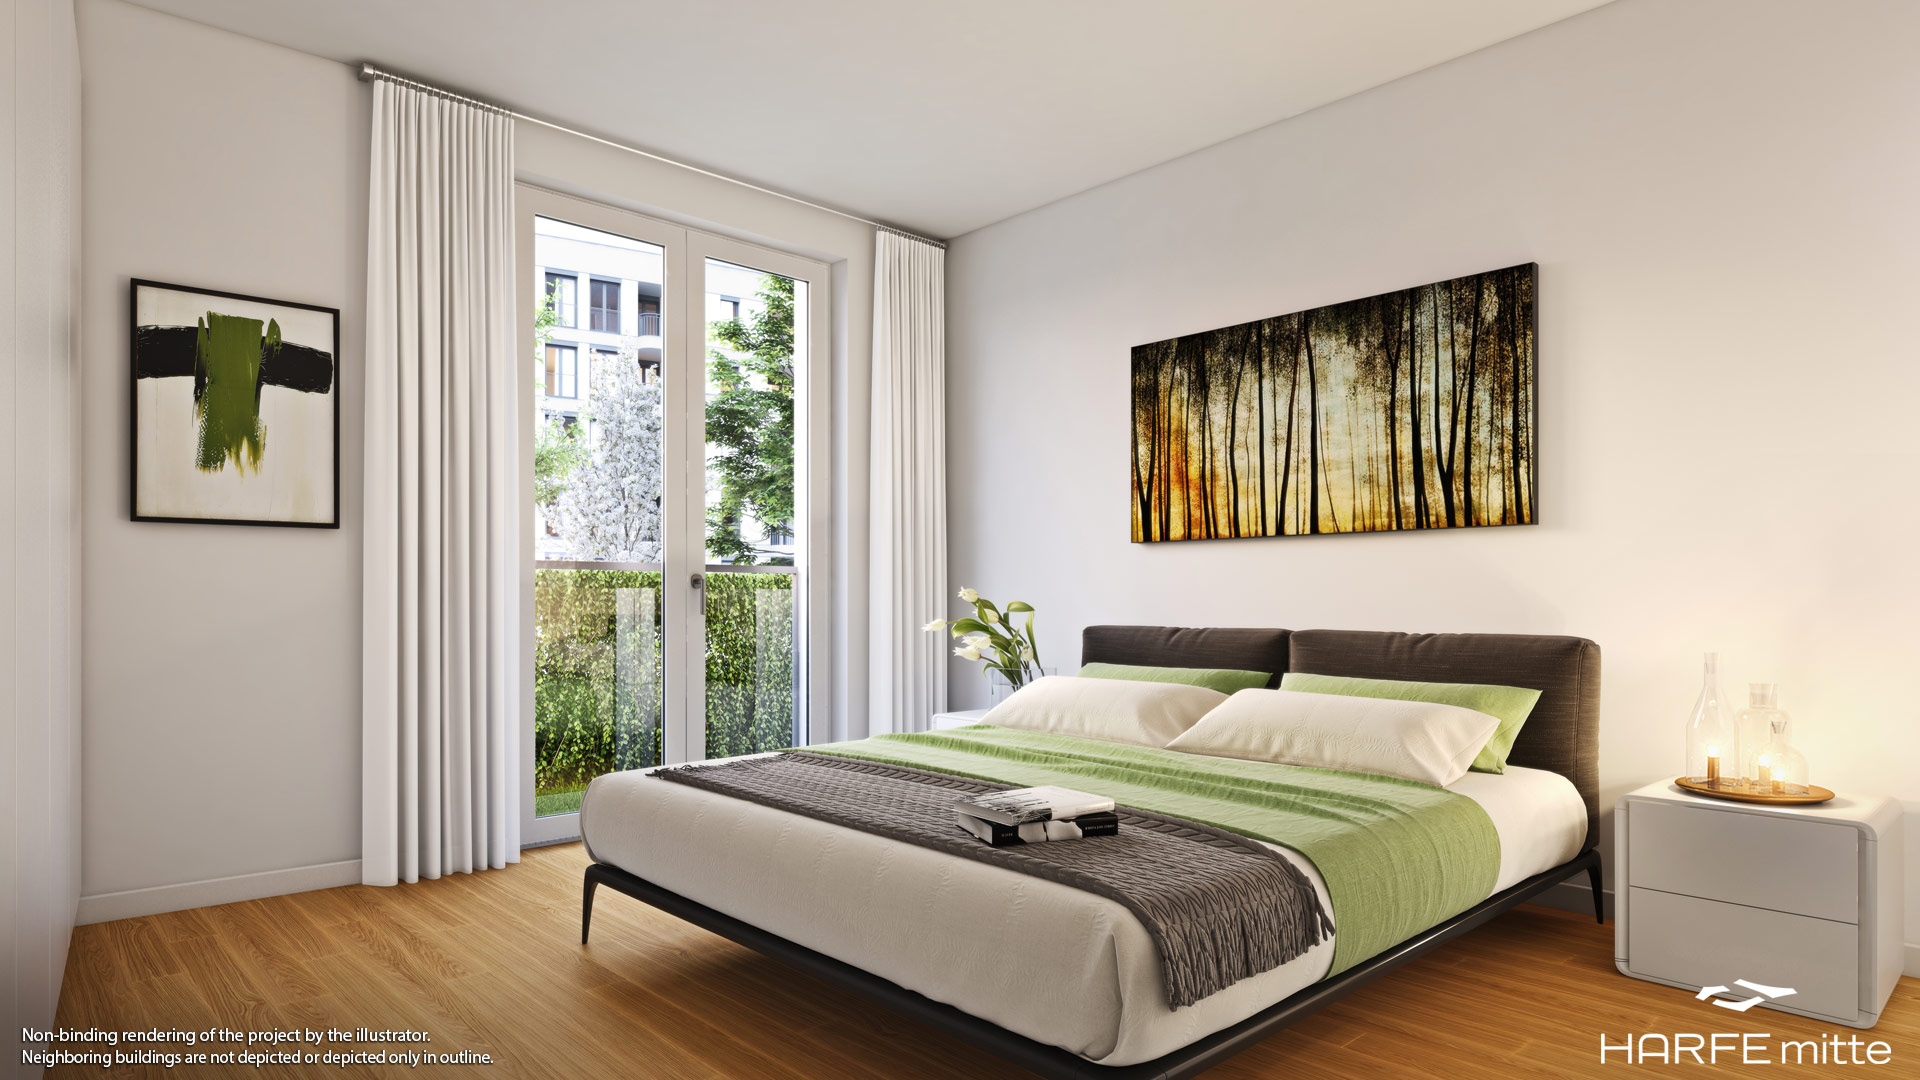 Property HARFE mitte - example illustration bedroom